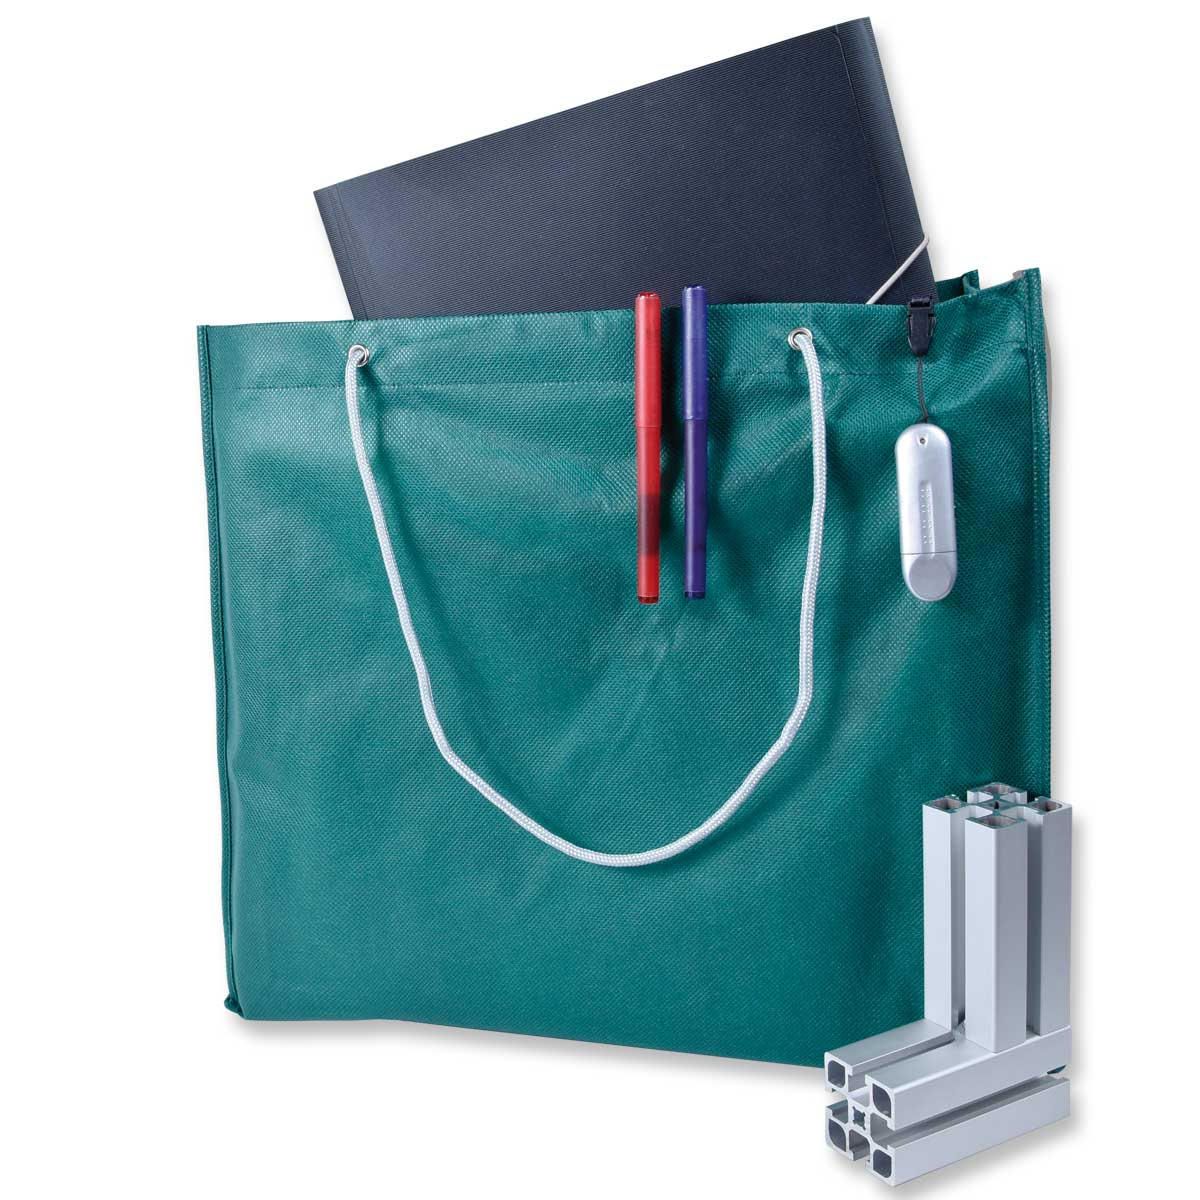 Shopping Bag with Cord Handles – 4002-22 (approx. 42 x 38 x 10 cm, Handles approx. 60 cm, dark green)